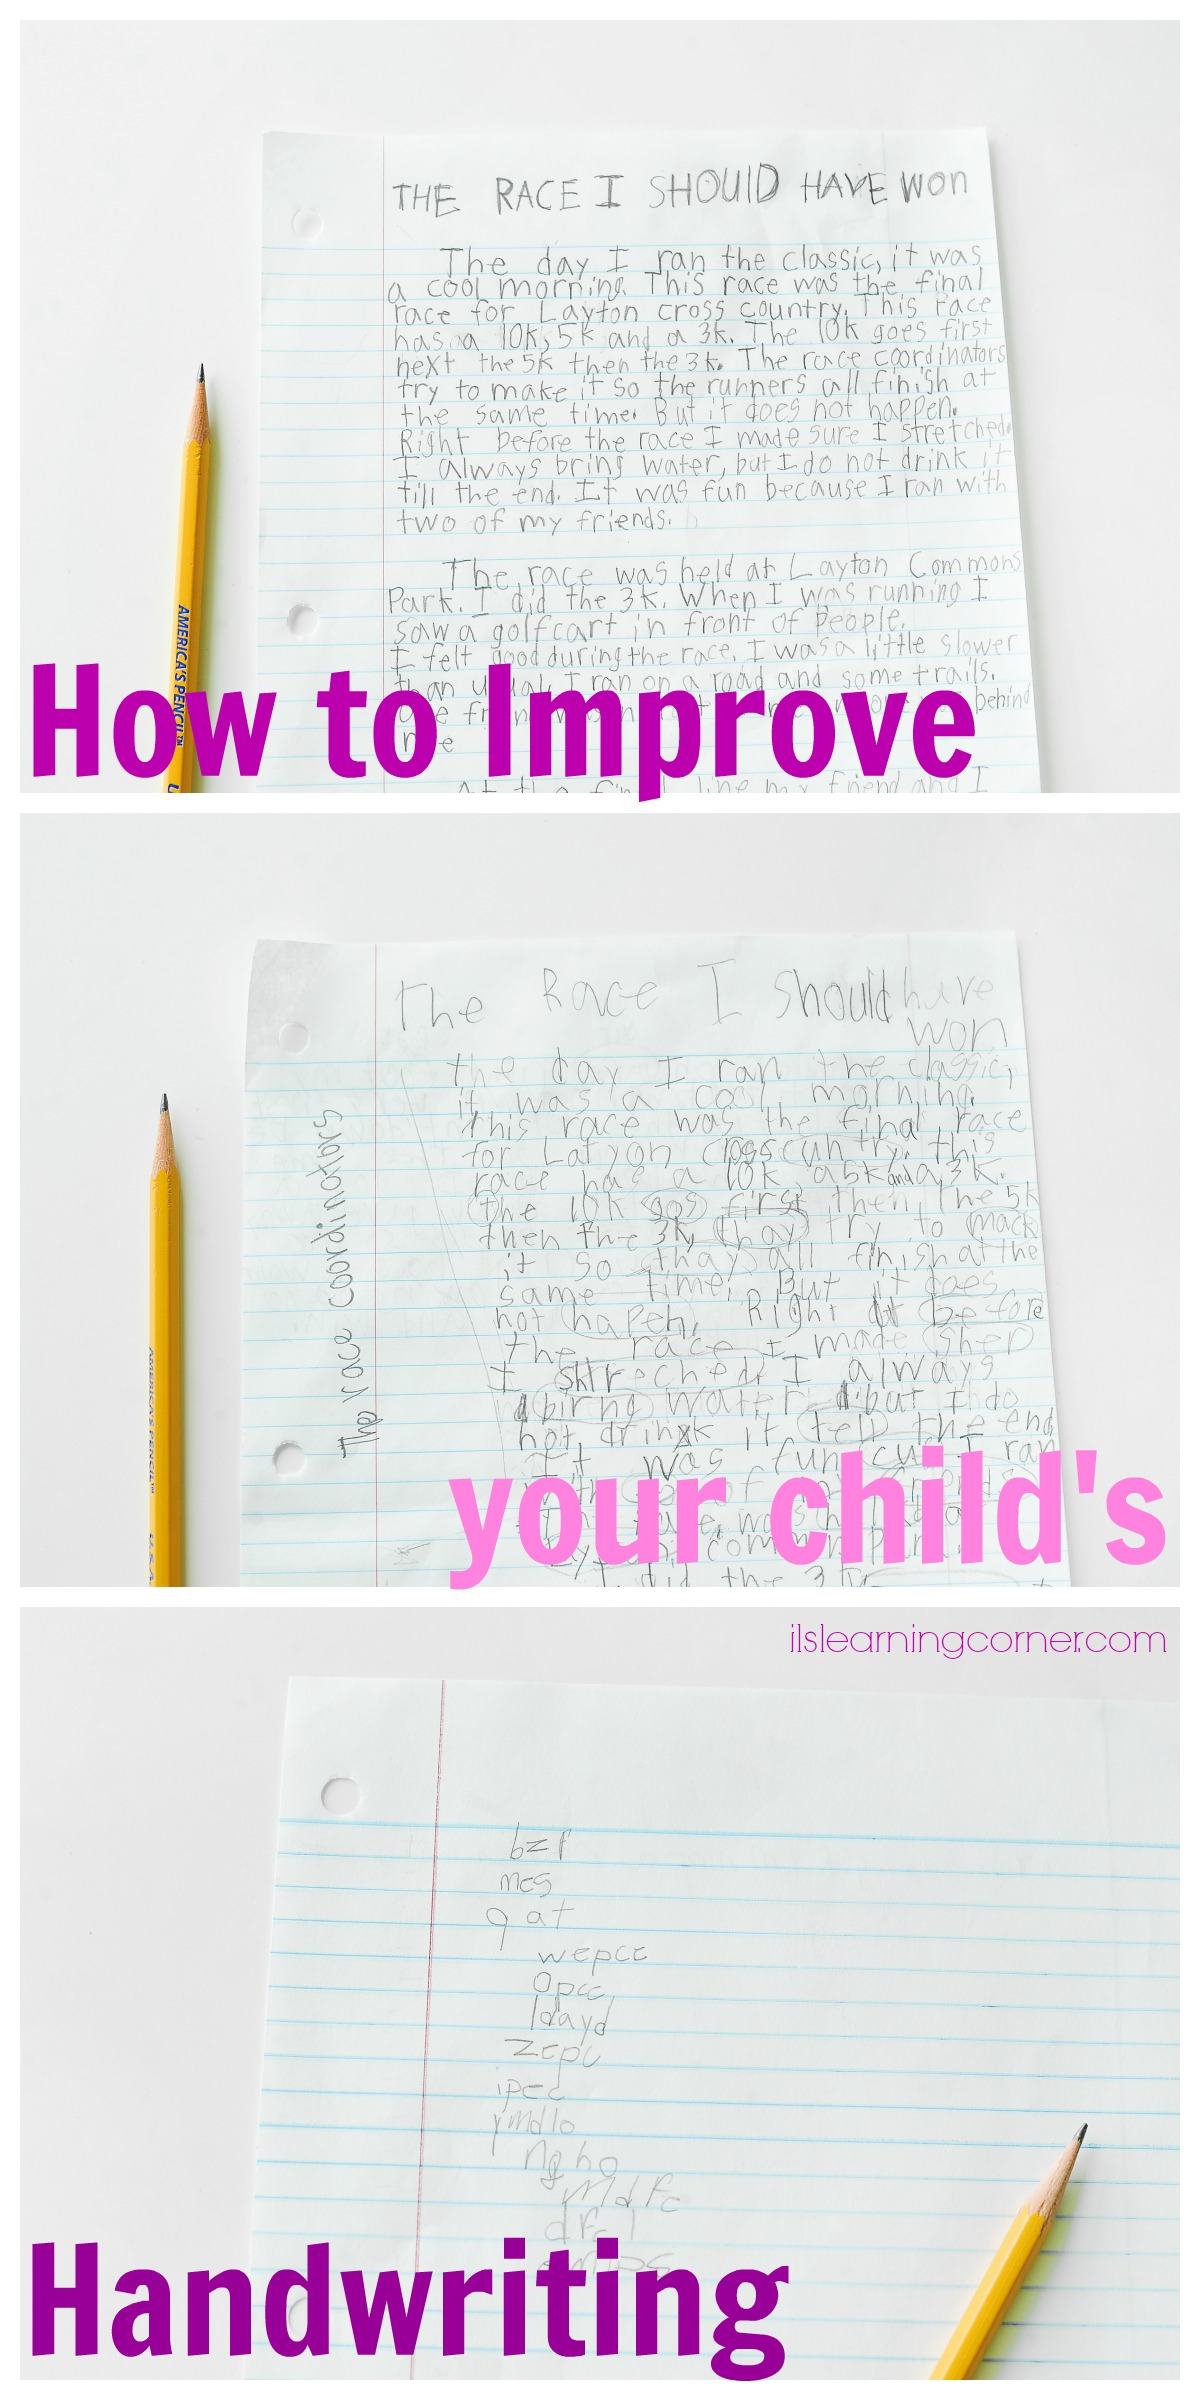 Worksheets Learn Fifth Grade Alphabet Writing handwriting results show importance of childs fine motor skills what your and tell you ilslearningcorner com